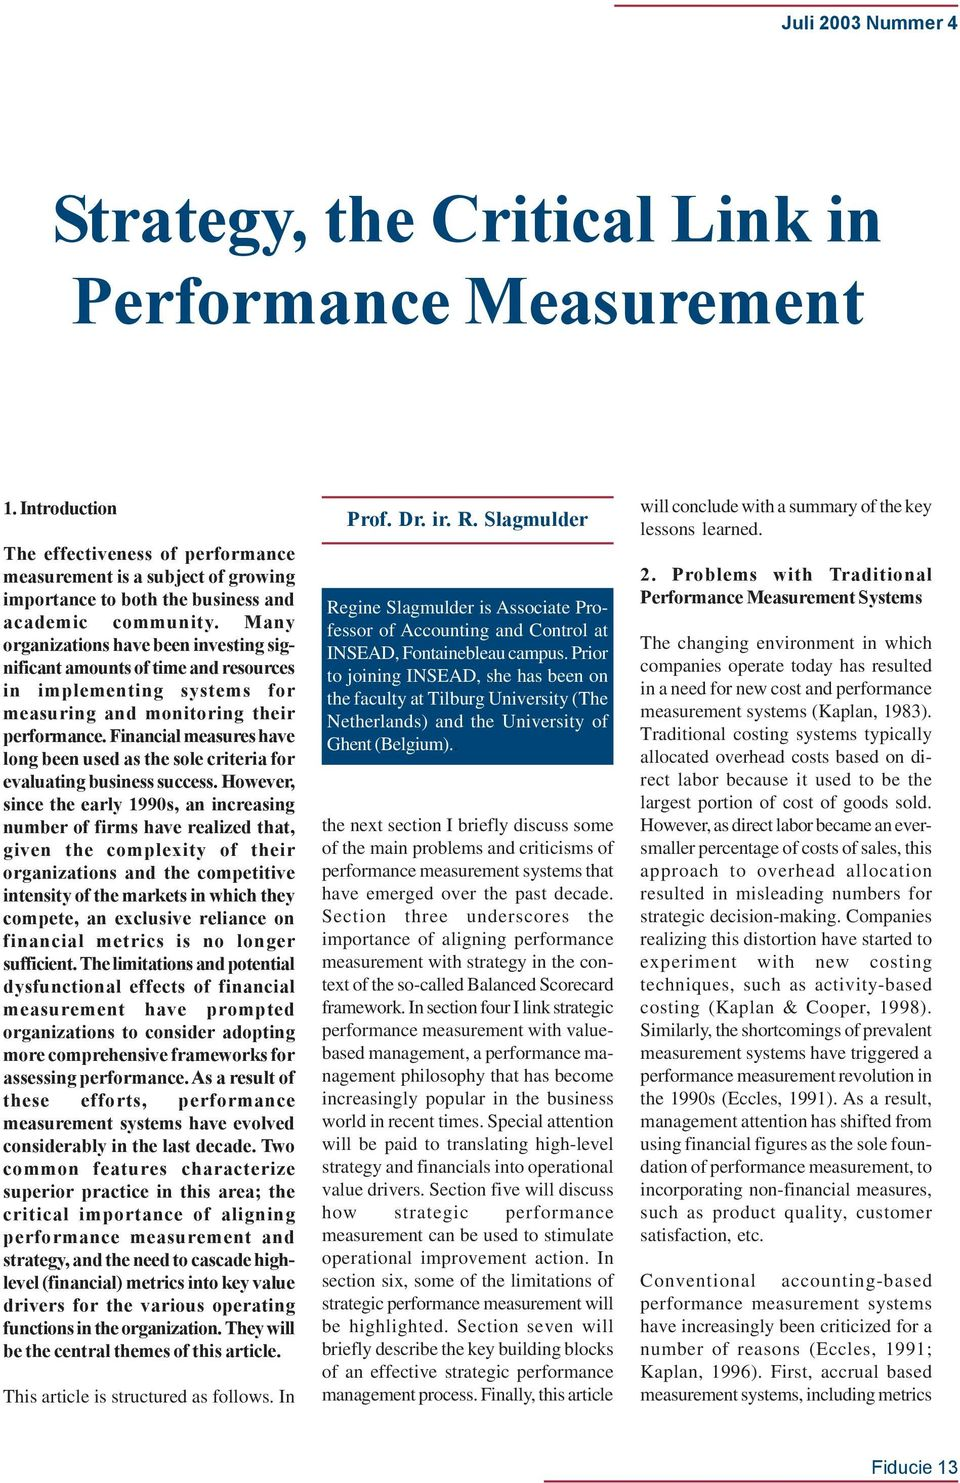 Many organizations have been investing significant amounts of time and resources in implementing systems for measuring and monitoring their performance.